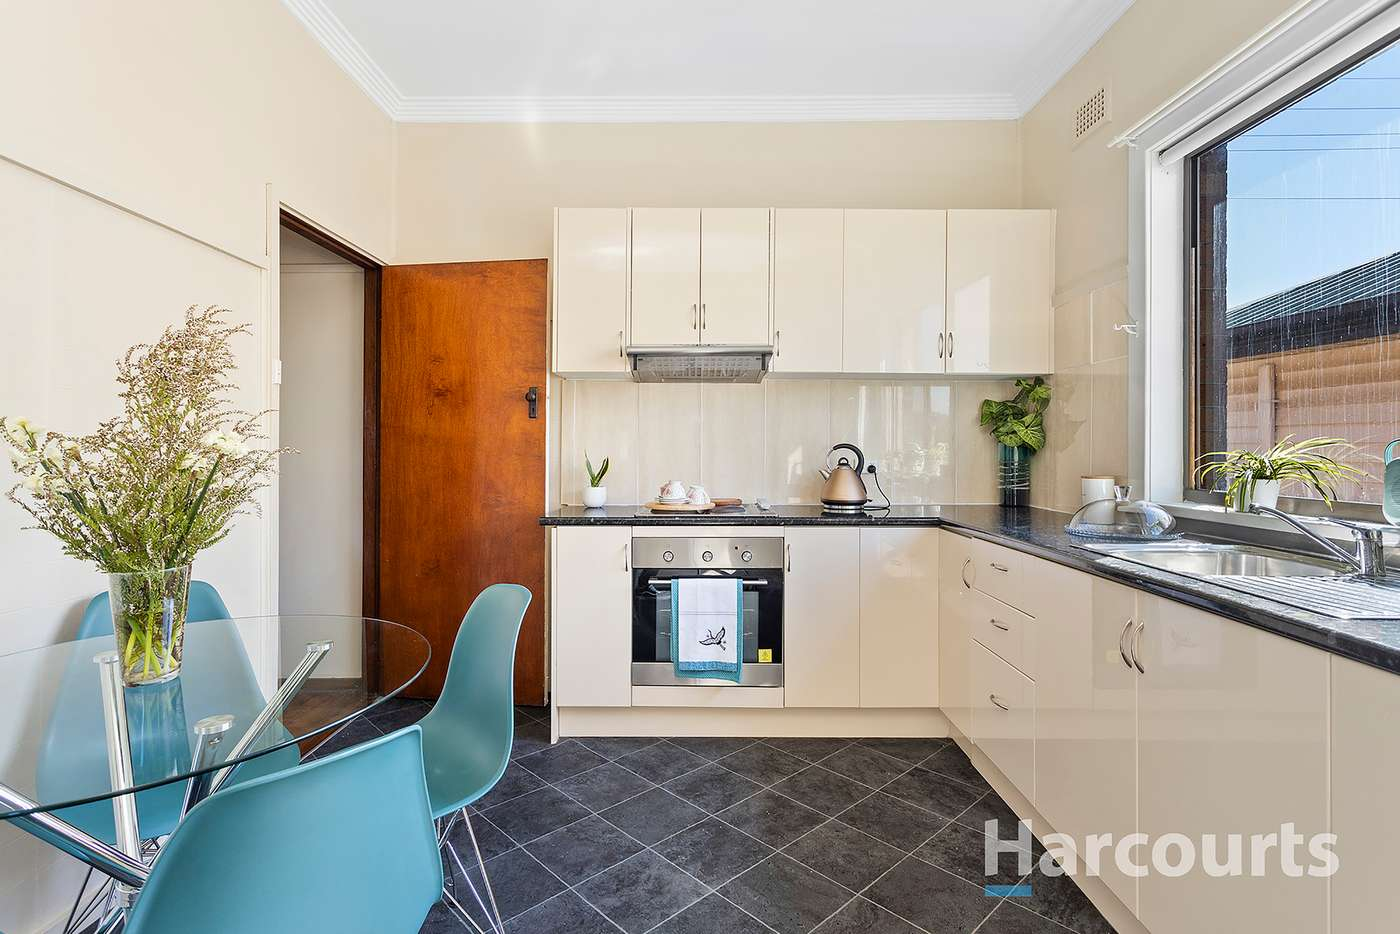 Fifth view of Homely house listing, 23 Grinsell Street, New Lambton NSW 2305